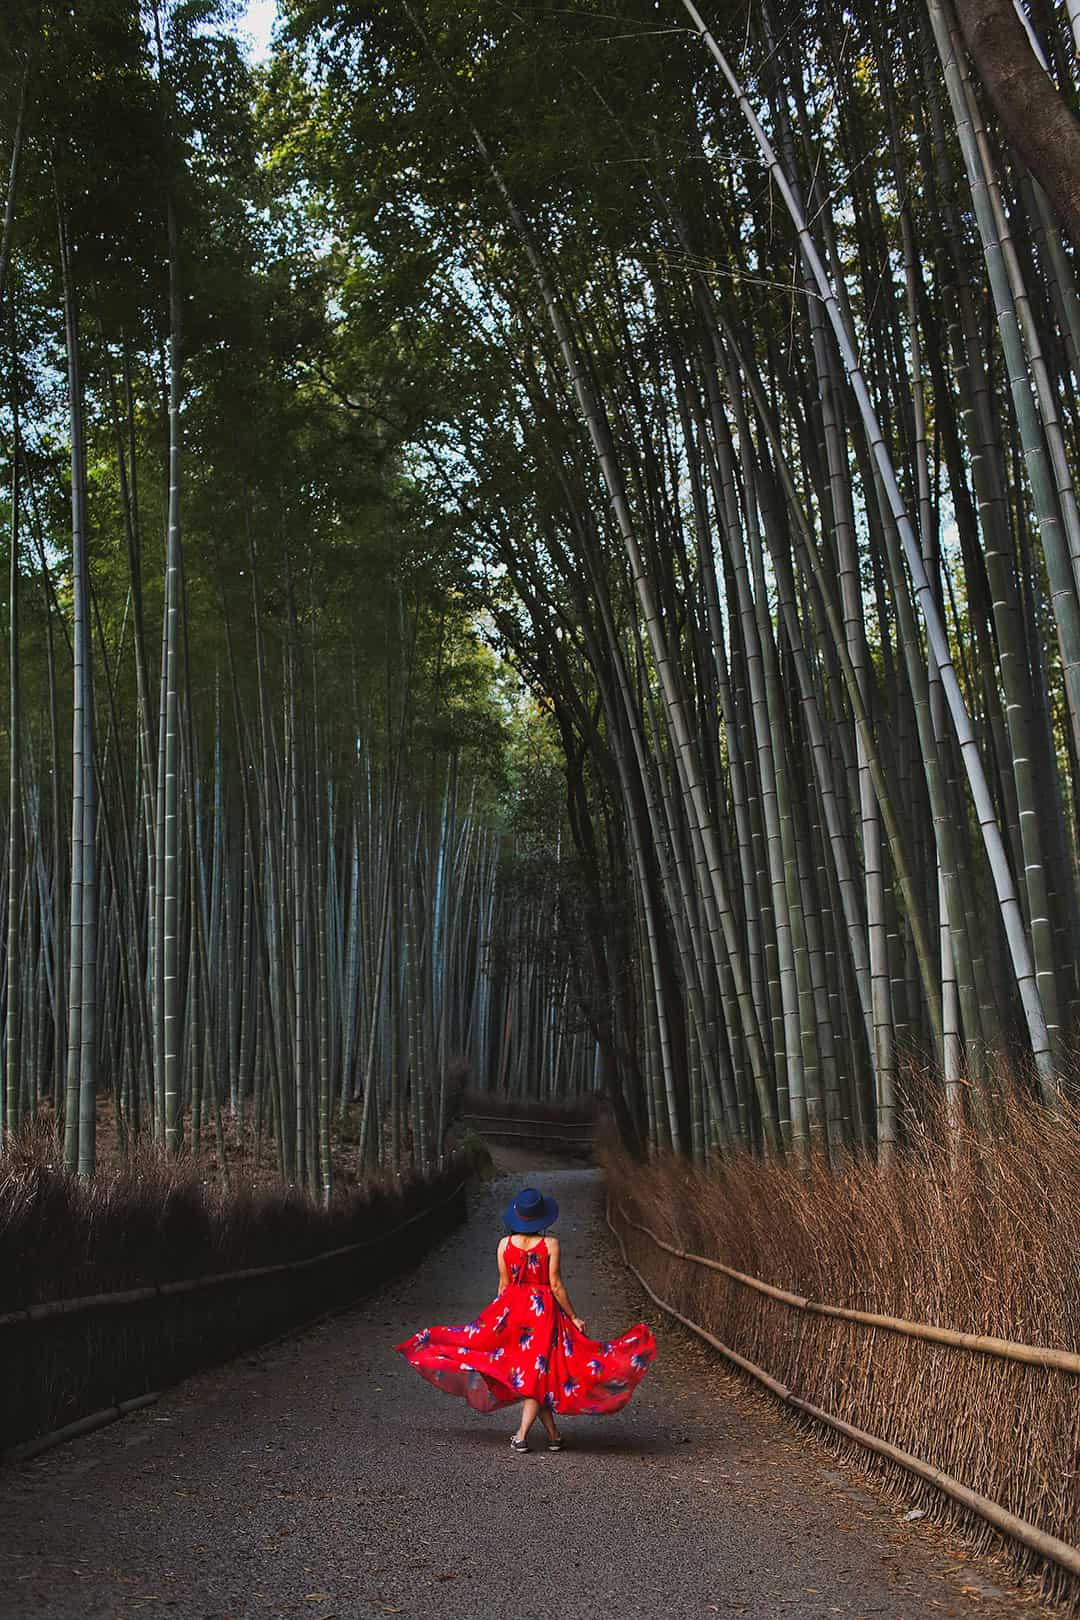 Arashiyama Bamboo Grove + 15 Amazing Things to Do in Kyoto for First Timers